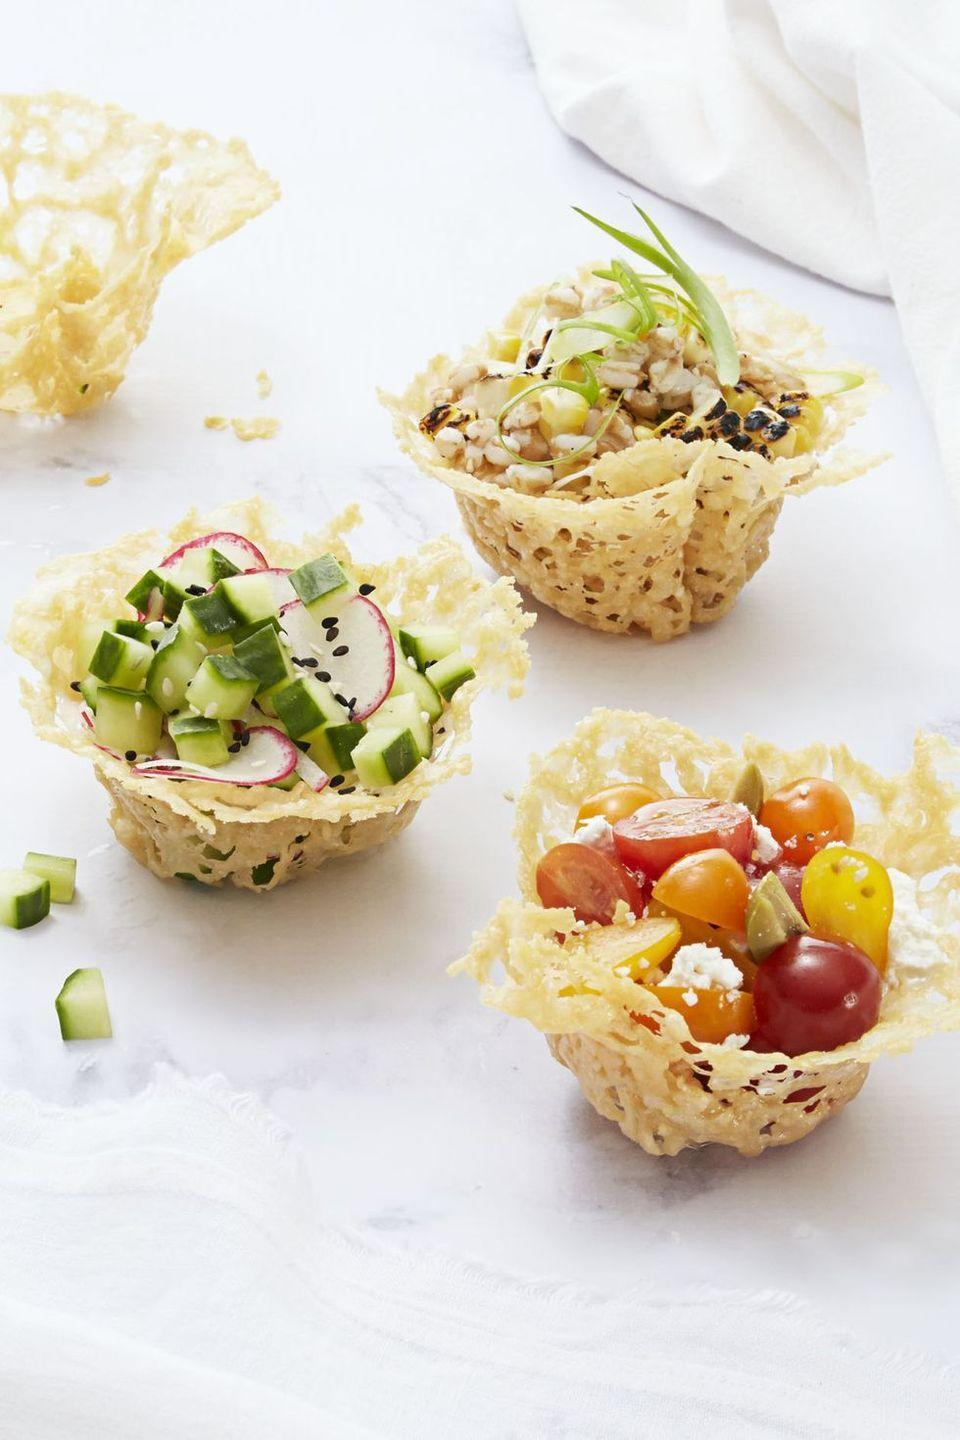 """<p>This delicate, baked Parmesan cheese cups are deceptively easy to make. You can fill them with whatever you want, but grape tomato, olive and feta make for a light and refreshing snack.</p><p><em><a href=""""https://www.goodhousekeeping.com/food-recipes/easy/a34370/frico-cups/"""" rel=""""nofollow noopener"""" target=""""_blank"""" data-ylk=""""slk:Get the recipe for Frico Cups »"""" class=""""link rapid-noclick-resp"""">Get the recipe for Frico Cups »</a></em> </p>"""